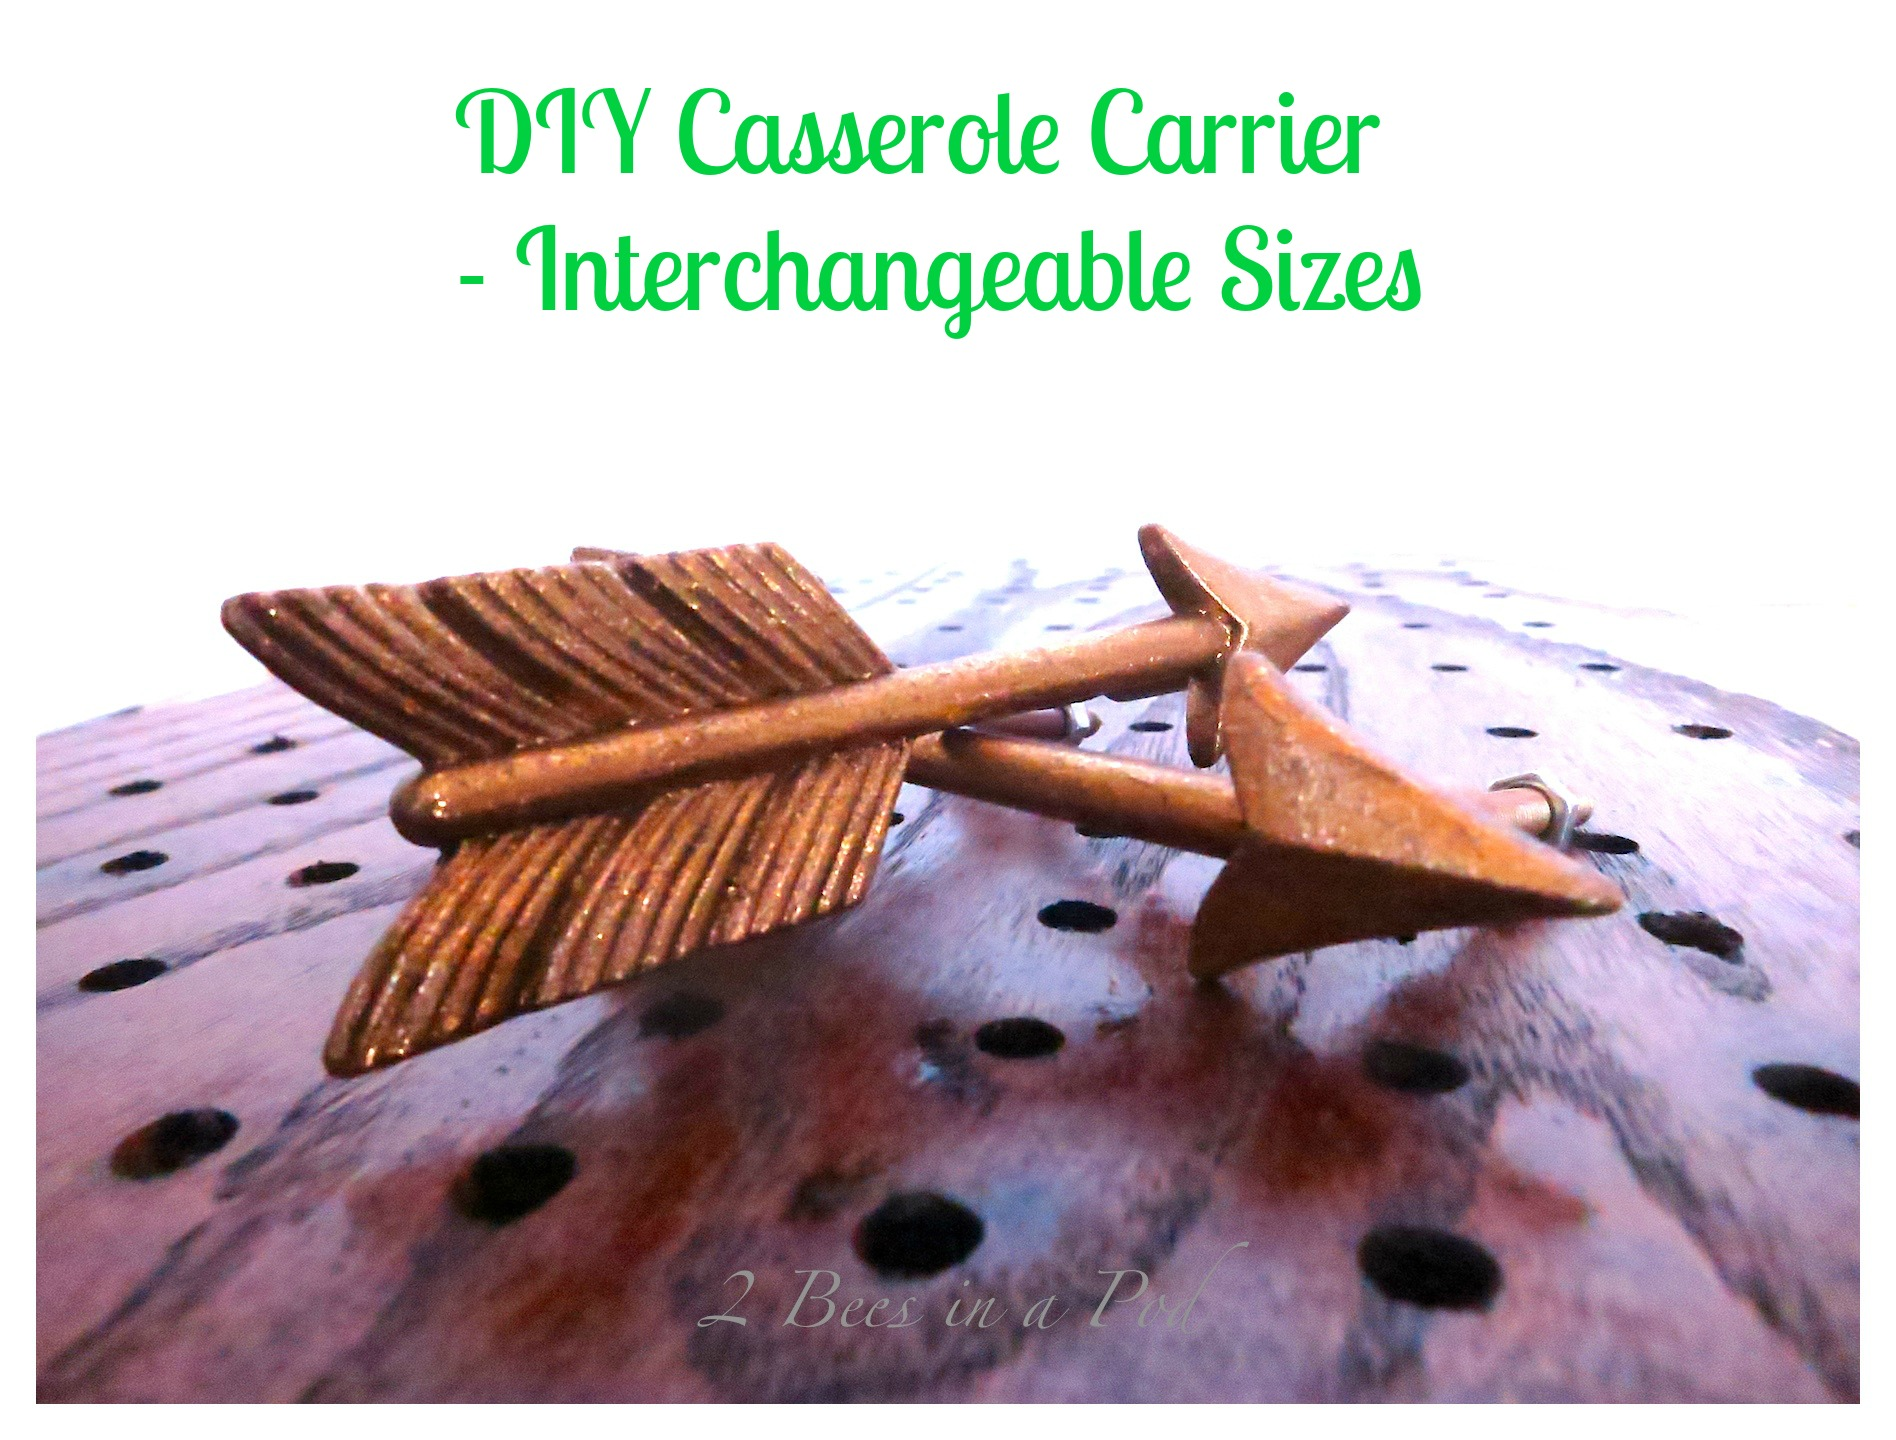 DIY Casserole Carrier - Interchangeable Sizes with pegboard. No more slipping and sliding messes when you take a casserole to your next potluck or party! This is a wonderful hostess gift or gift for a friend or family member..especially one that likes to cook!